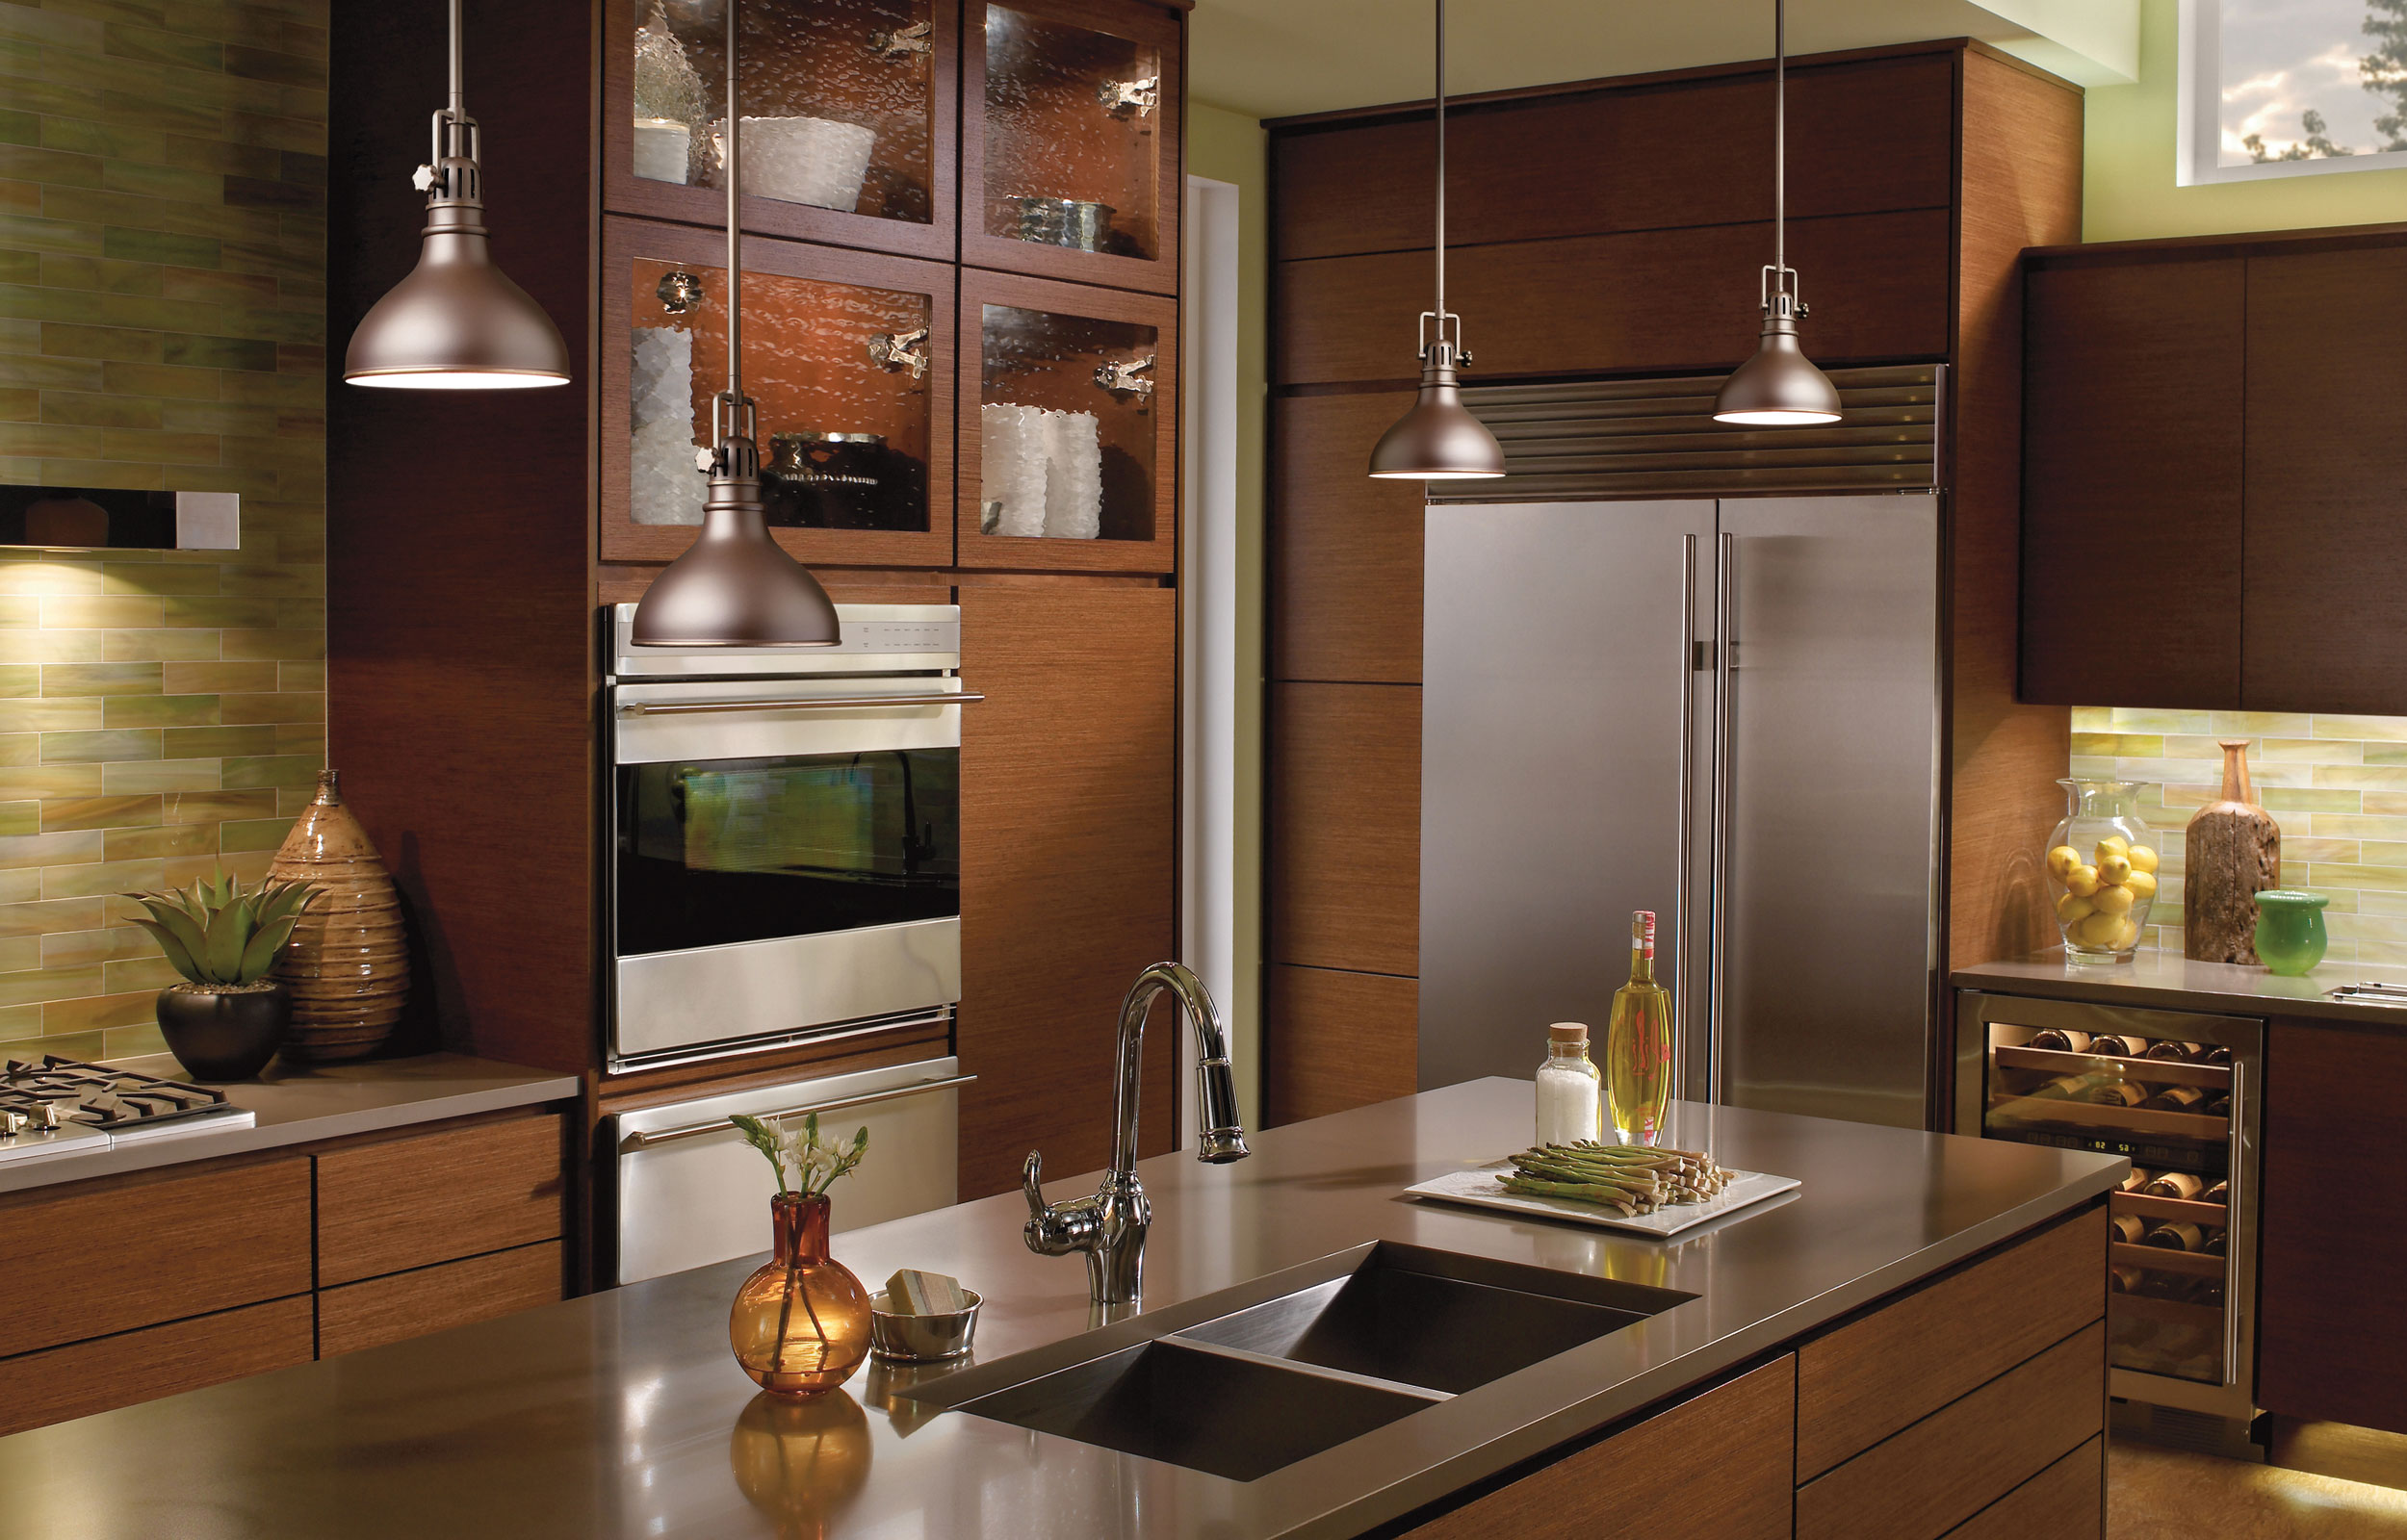 Light Fixtures For Kitchen On Kitchen Adorable Kitchen Lighting  Lightstyle Of Orlando